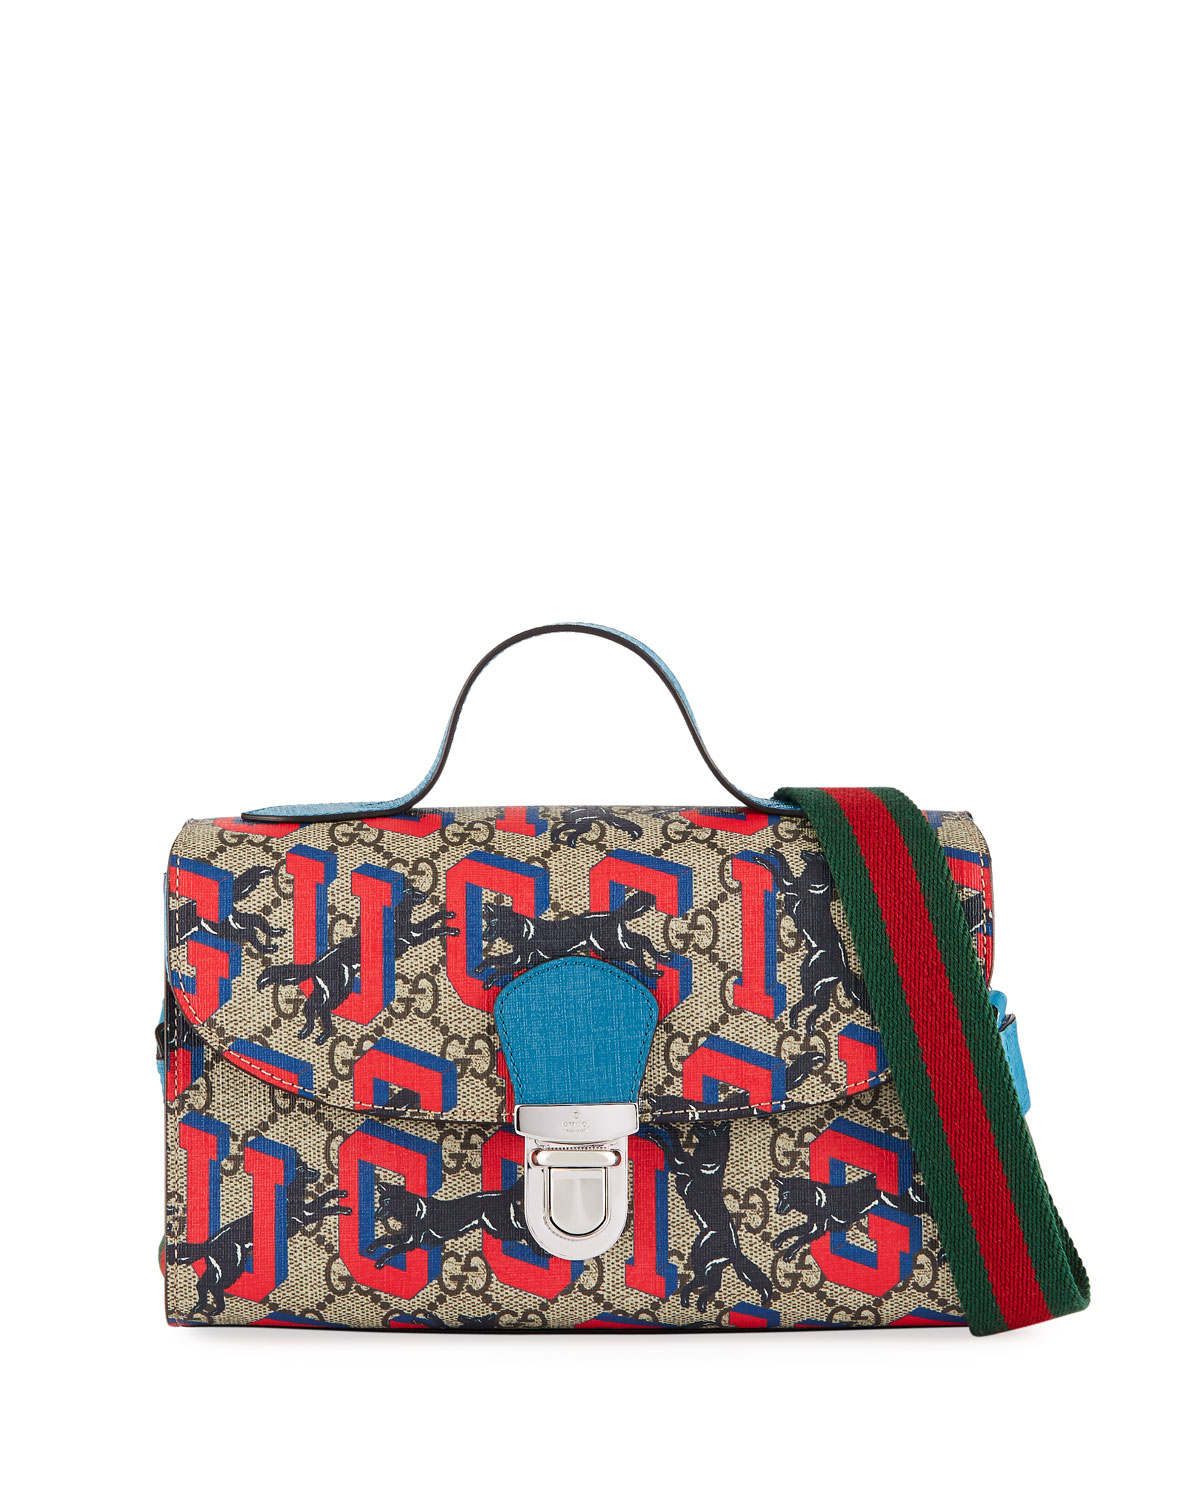 014664da4626db Gucci Kids' Wolves-Print GG Supreme Top-Handle Flap Bag | Neiman Marcus